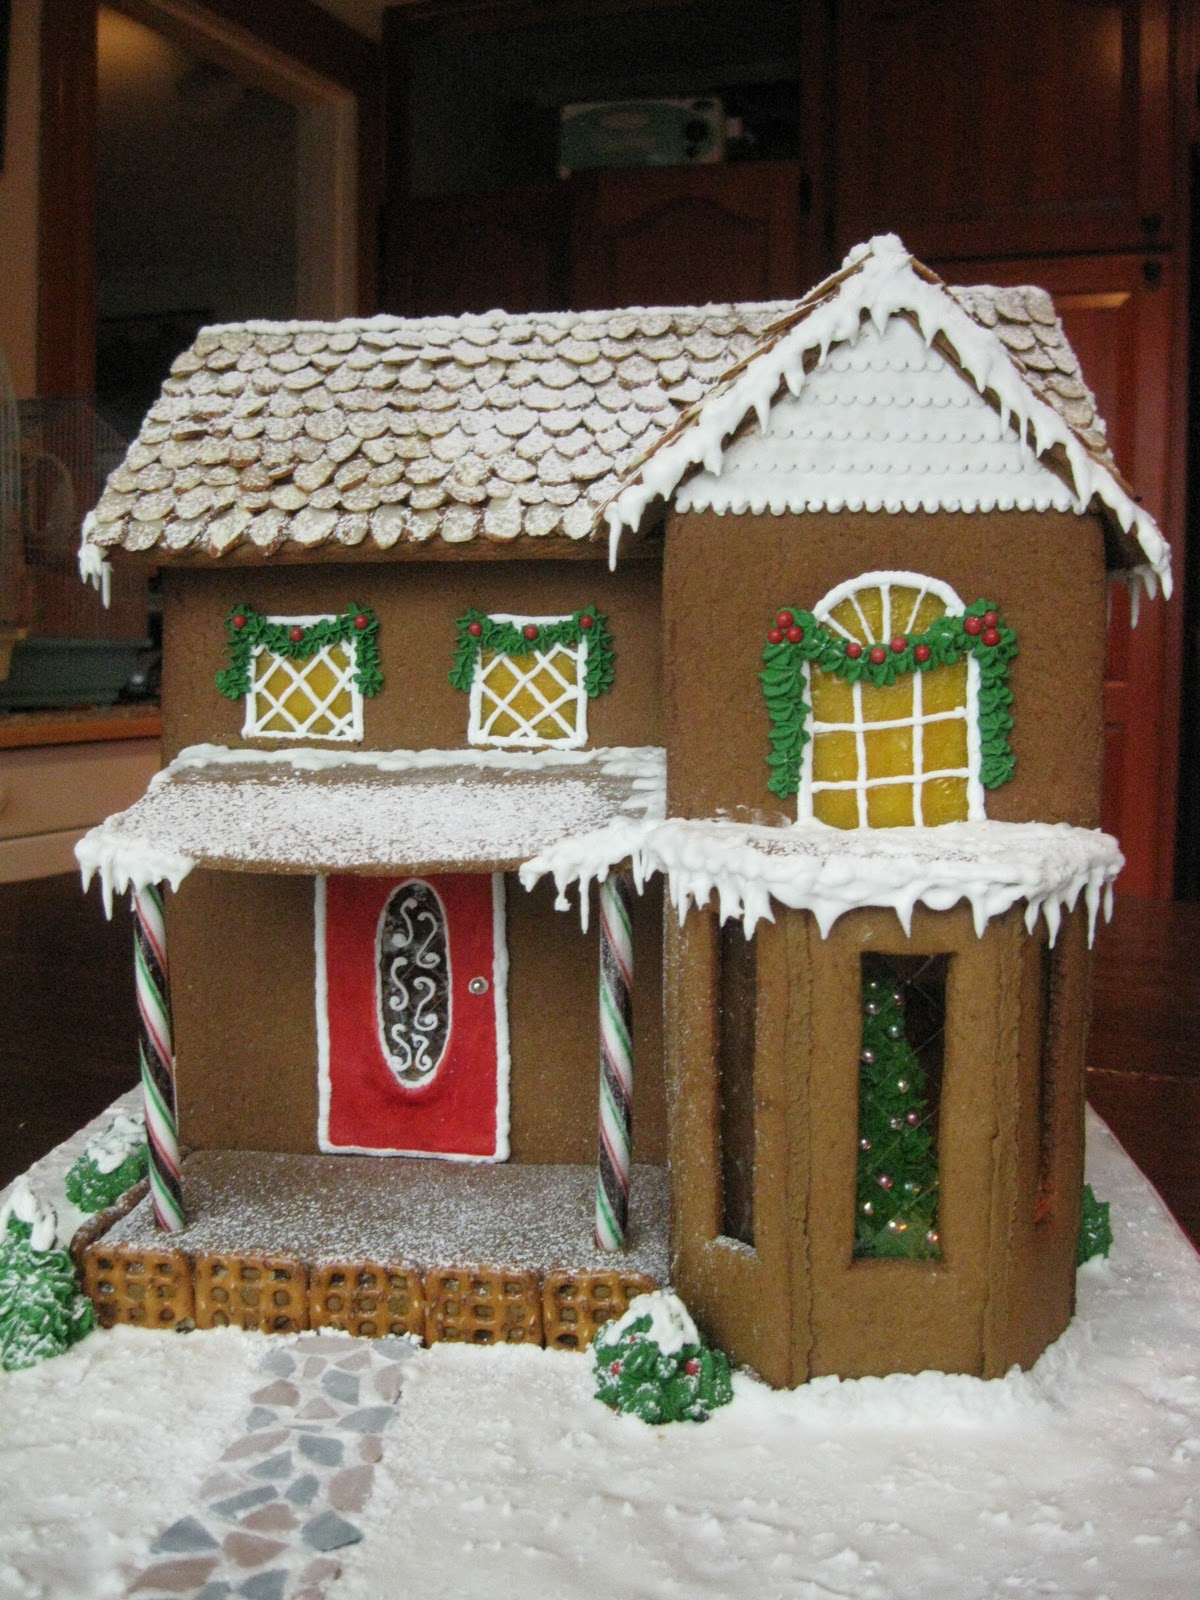 Baking outside the box gingerbread houses tips and ideas tis the season for gingerbread houses i love to build gingerbread houses and the great thing is that you can make them as simple or as involved as you solutioingenieria Images